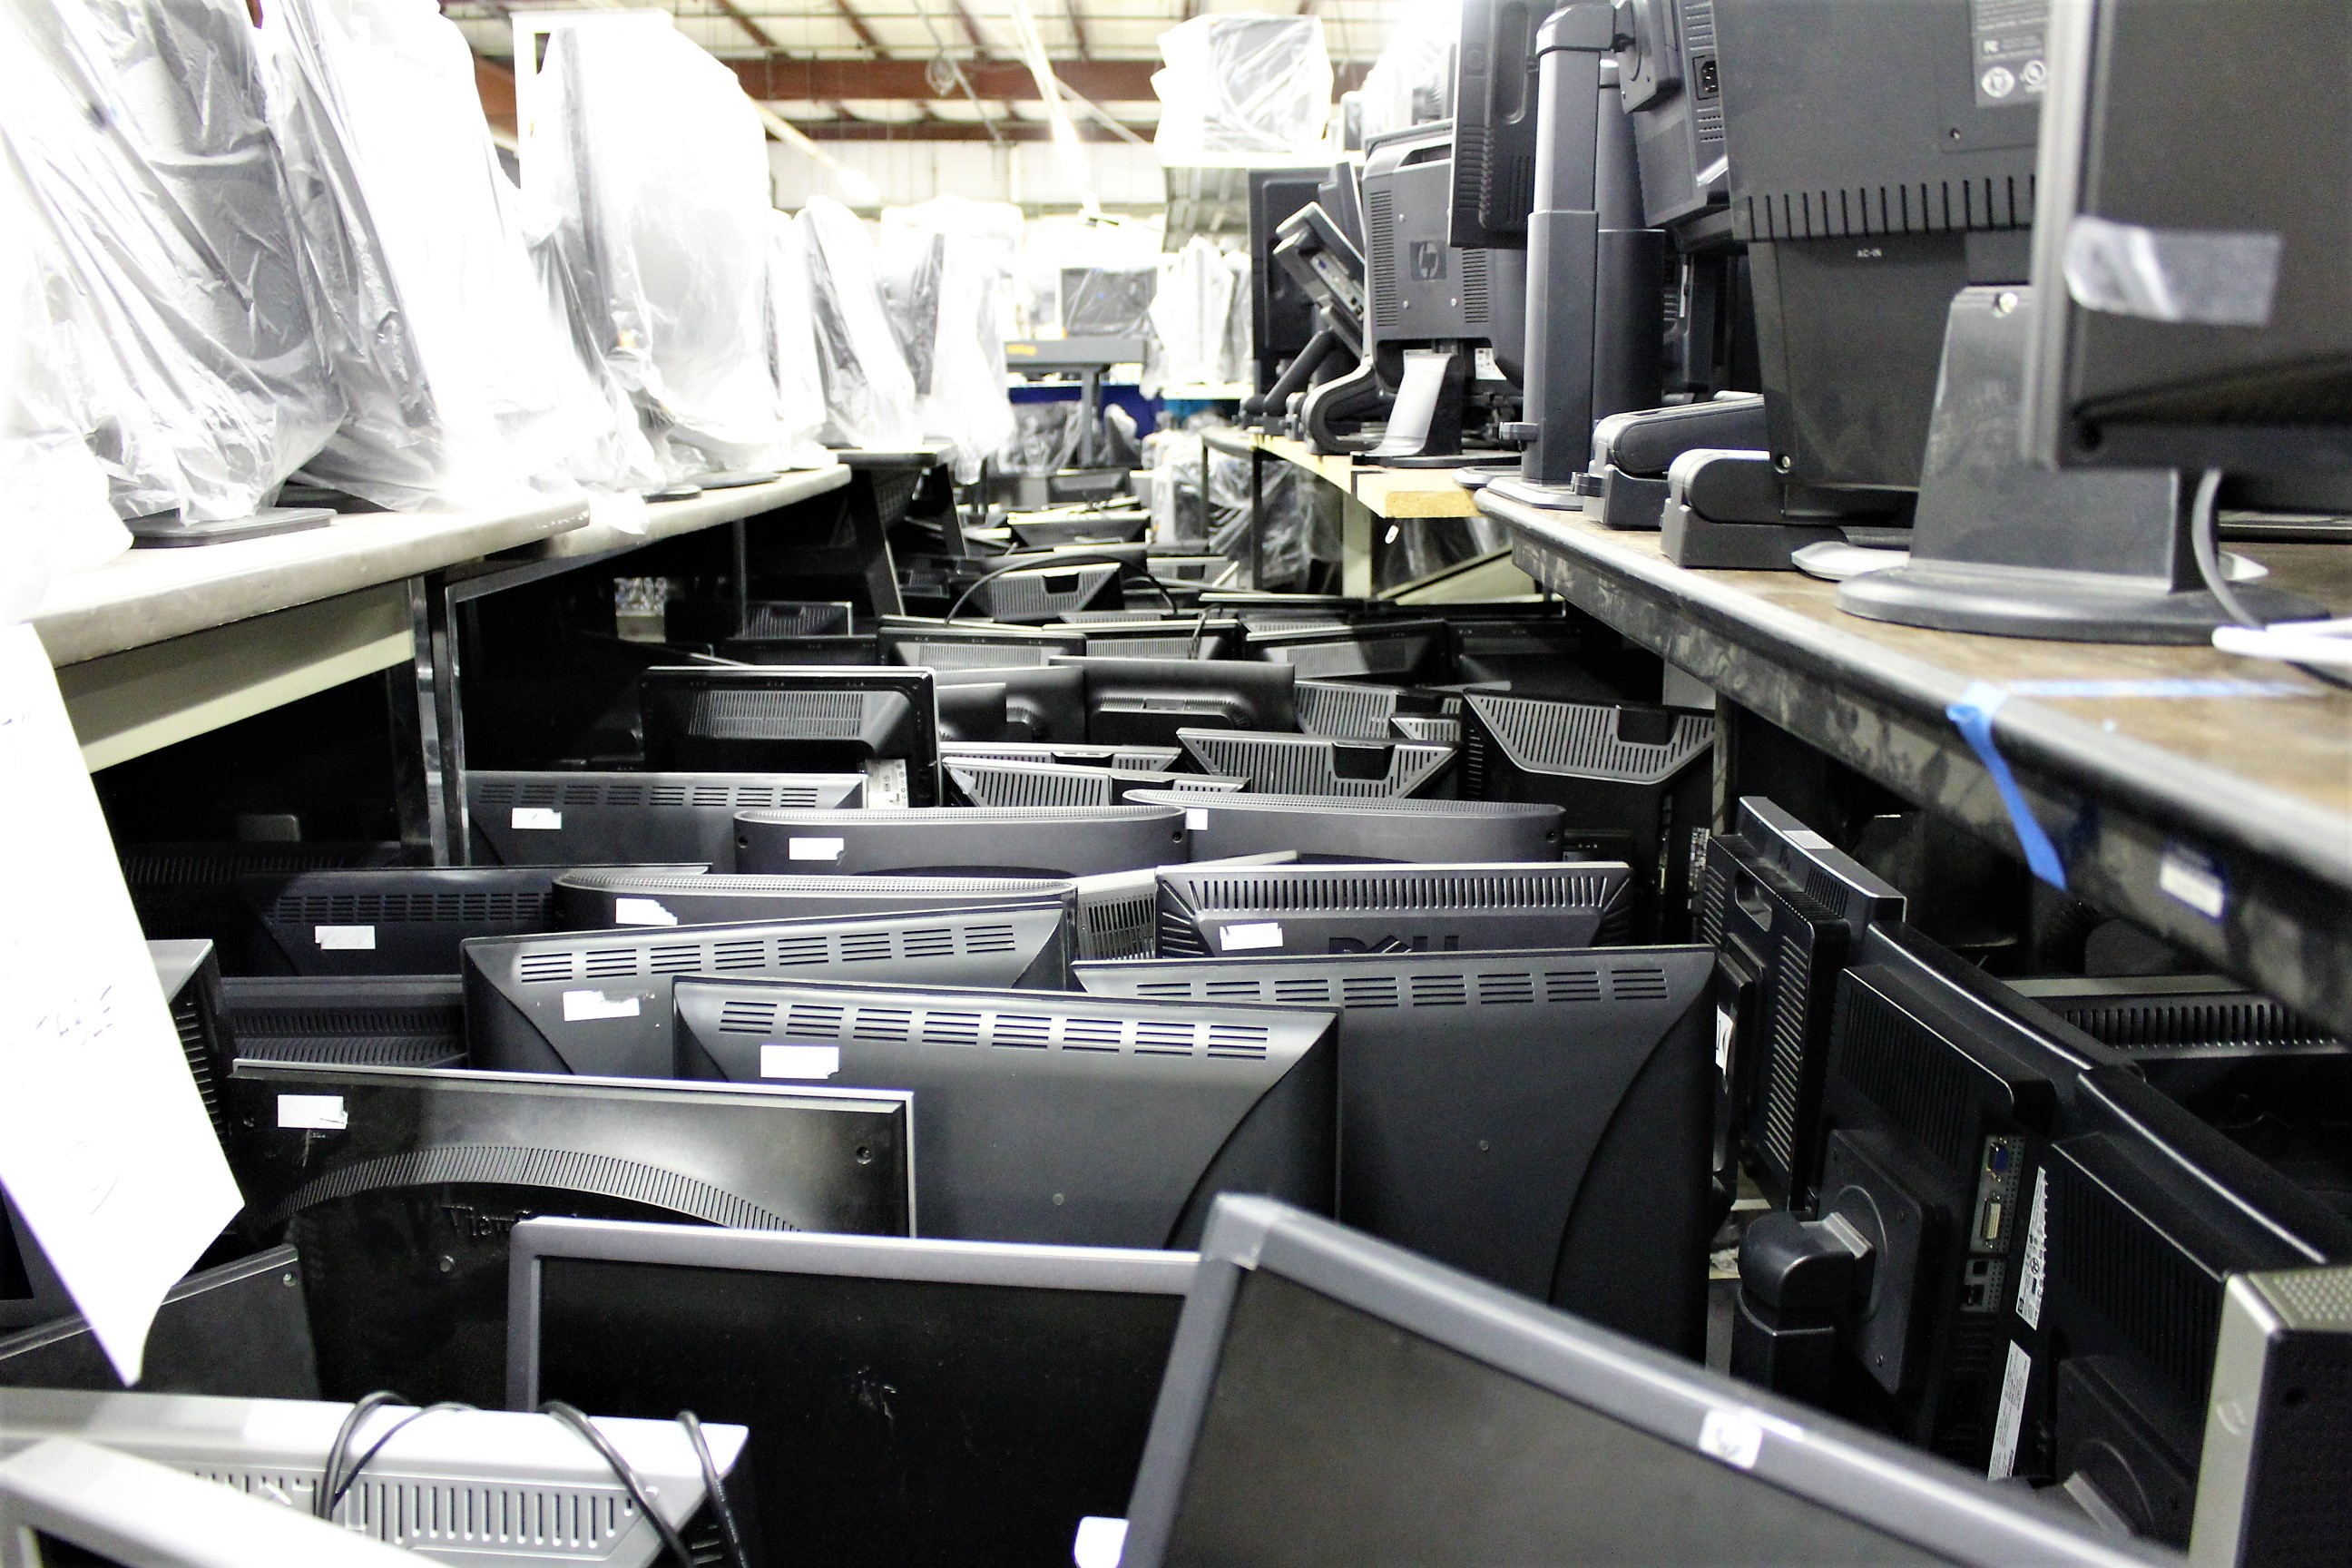 river of monitors